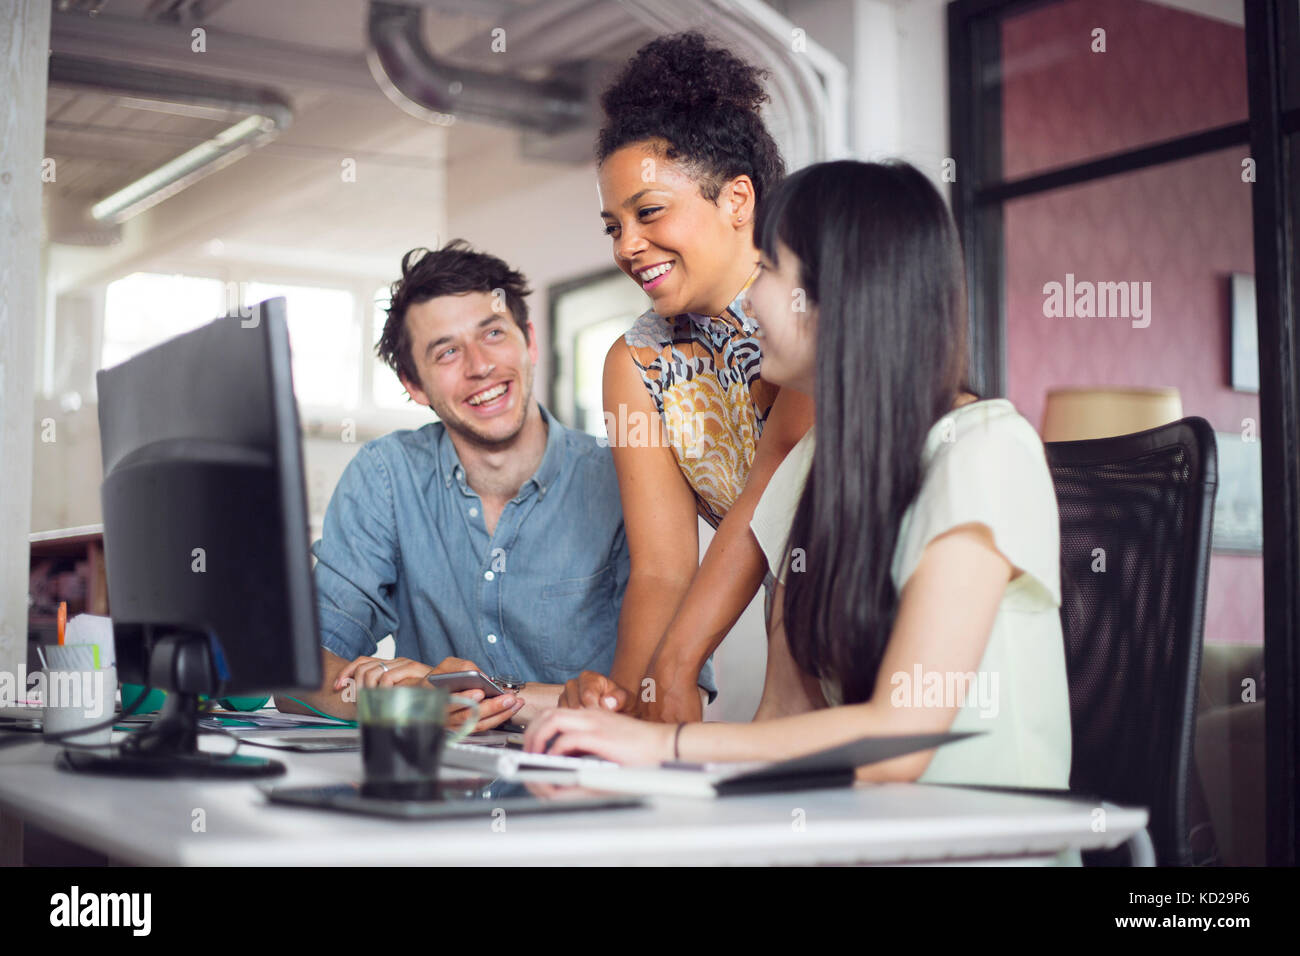 Coworkers smiling in front of computer monitor Stock Photo